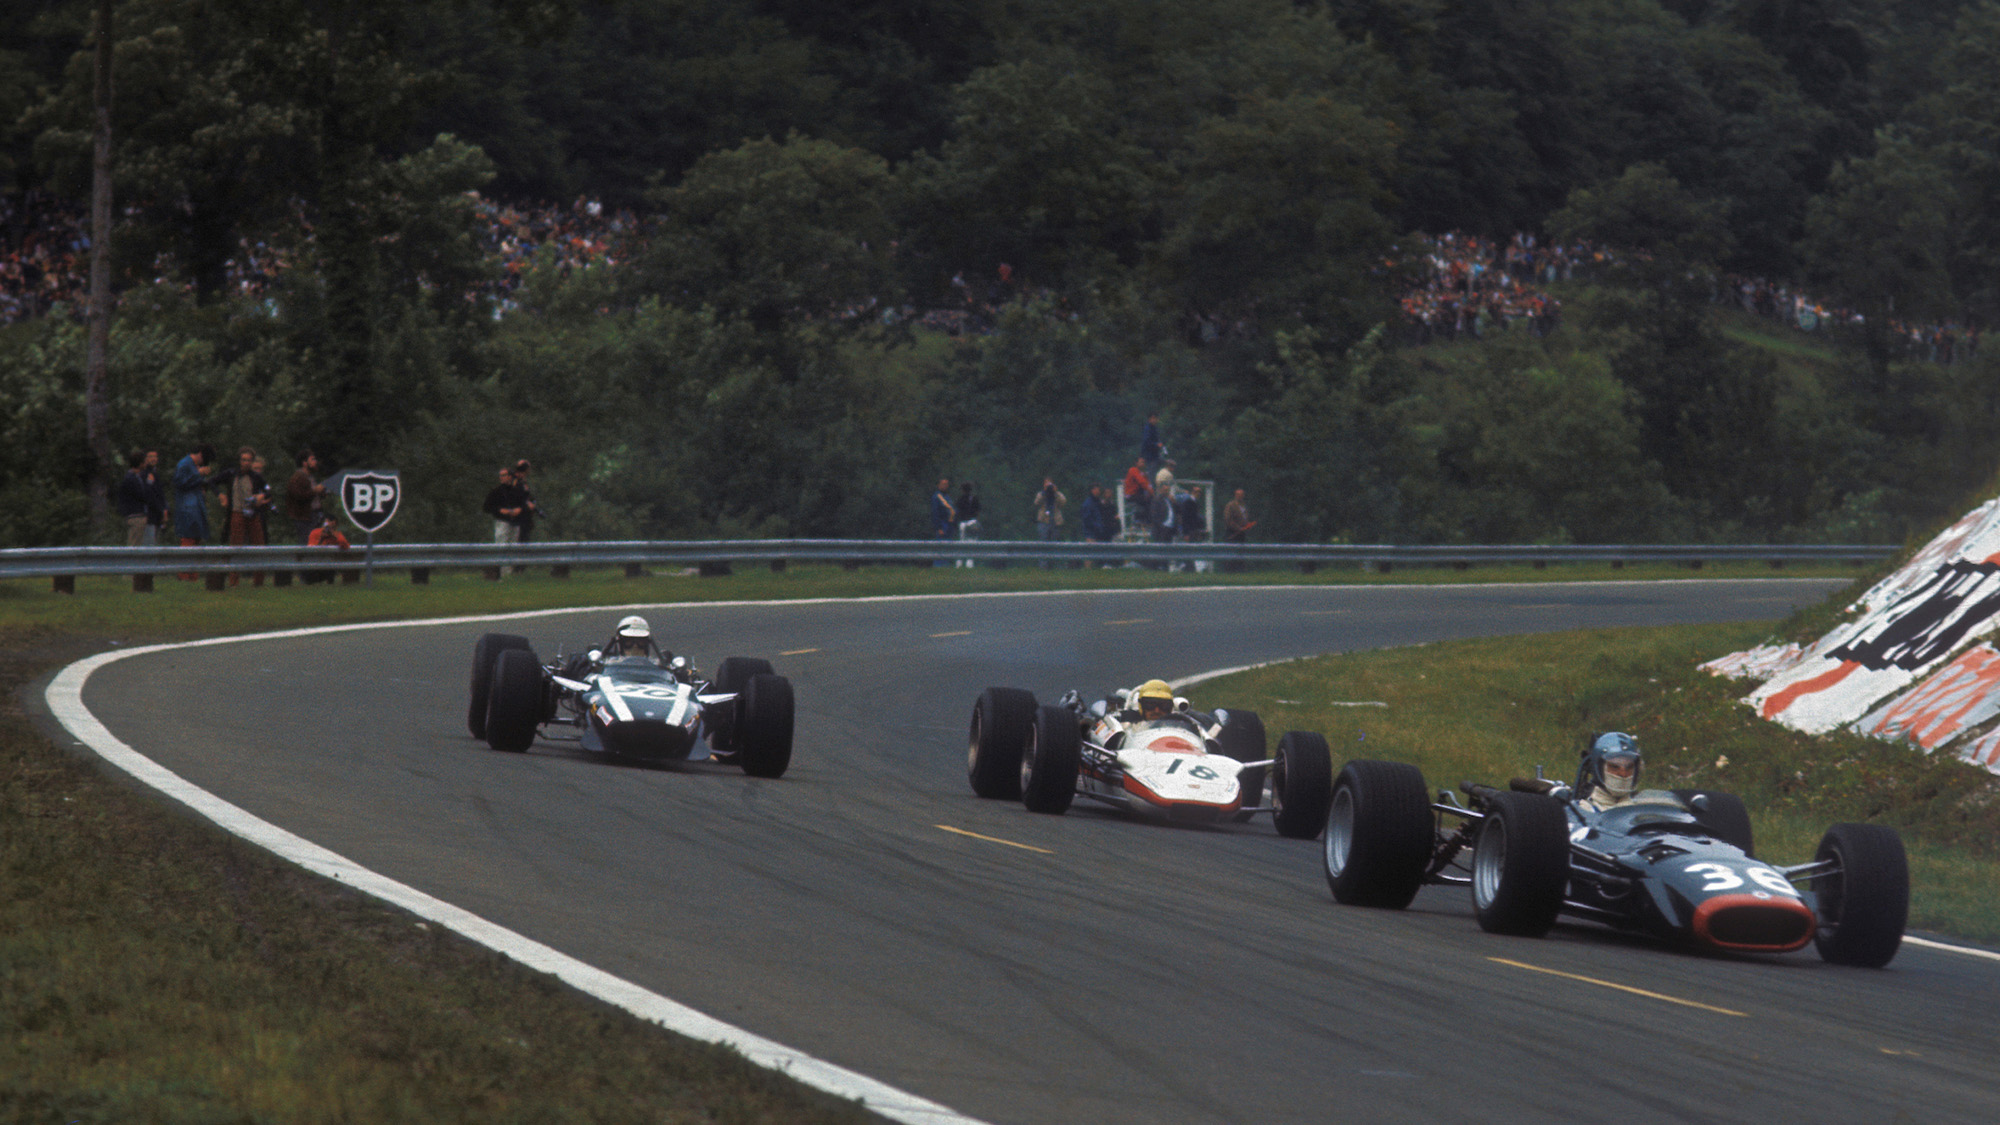 Jo Schlesser Piers Courage and Vic elfors on the opening lap of the 1968 French Grand Prix at Rouen les Essarts